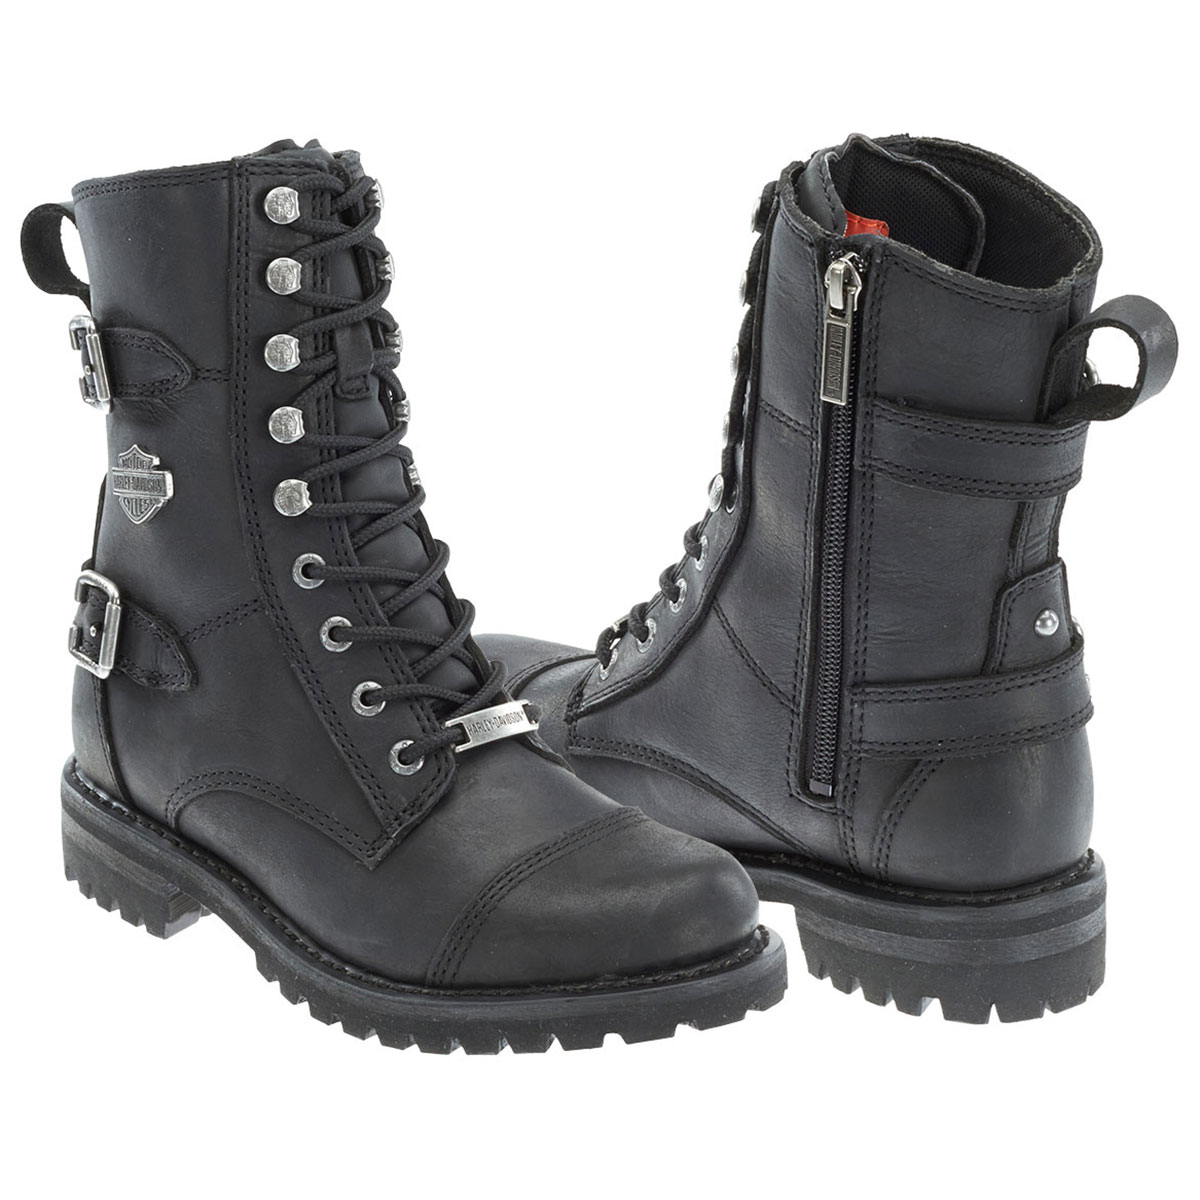 22c38e51a6b 83853 - Harley-Davidson® Womens Balsa Black Leather Mid Cut Boot ...